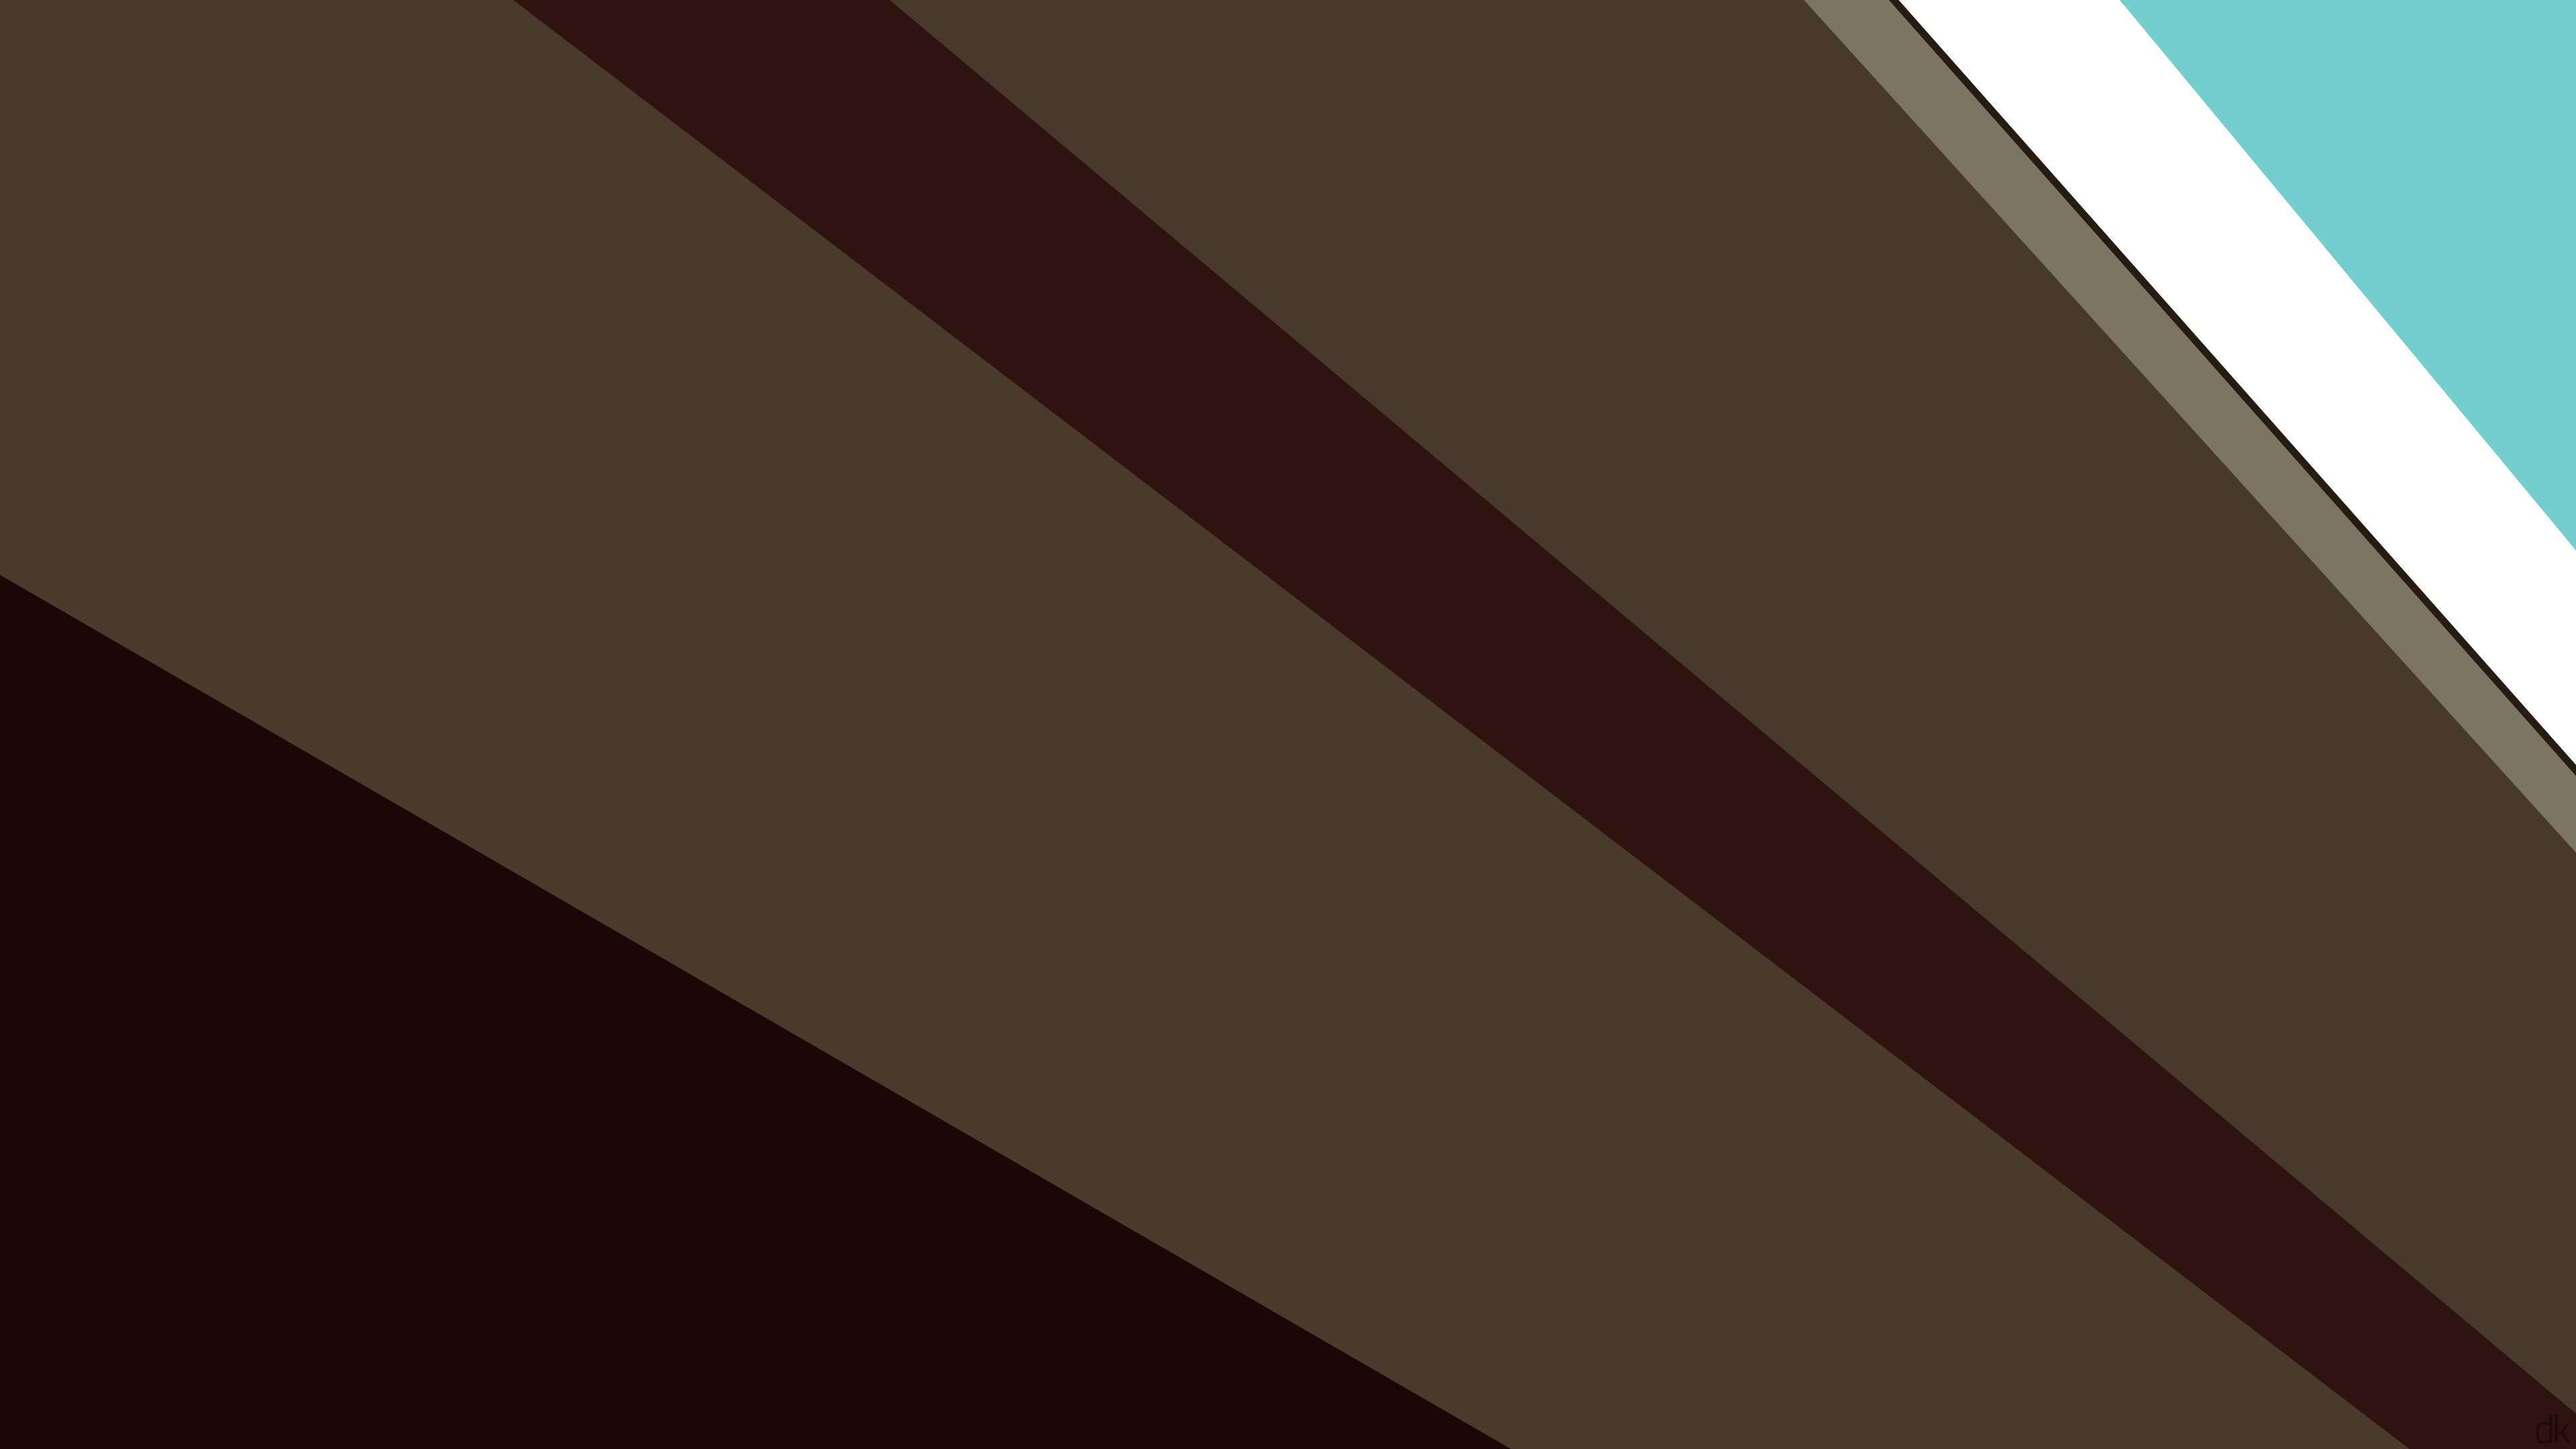 Minflat default android l wallpaper 4k by dakoder on for Sfondi material design